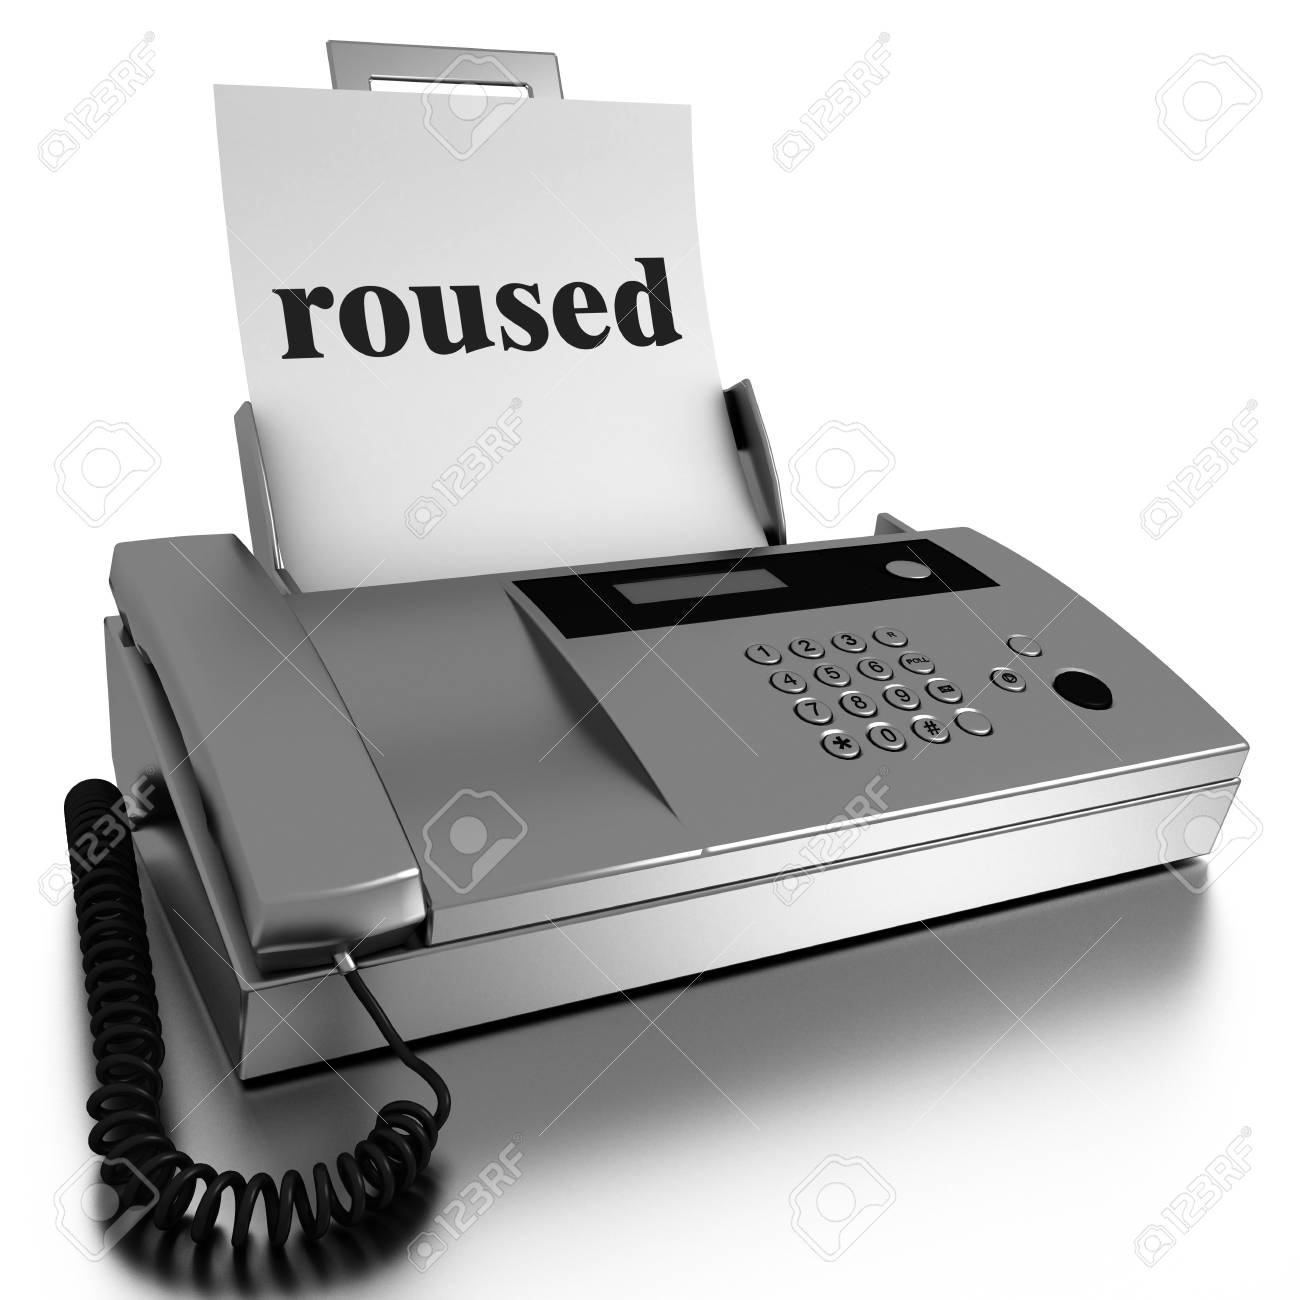 Word printed on fax on white background Stock Photo - 13473113